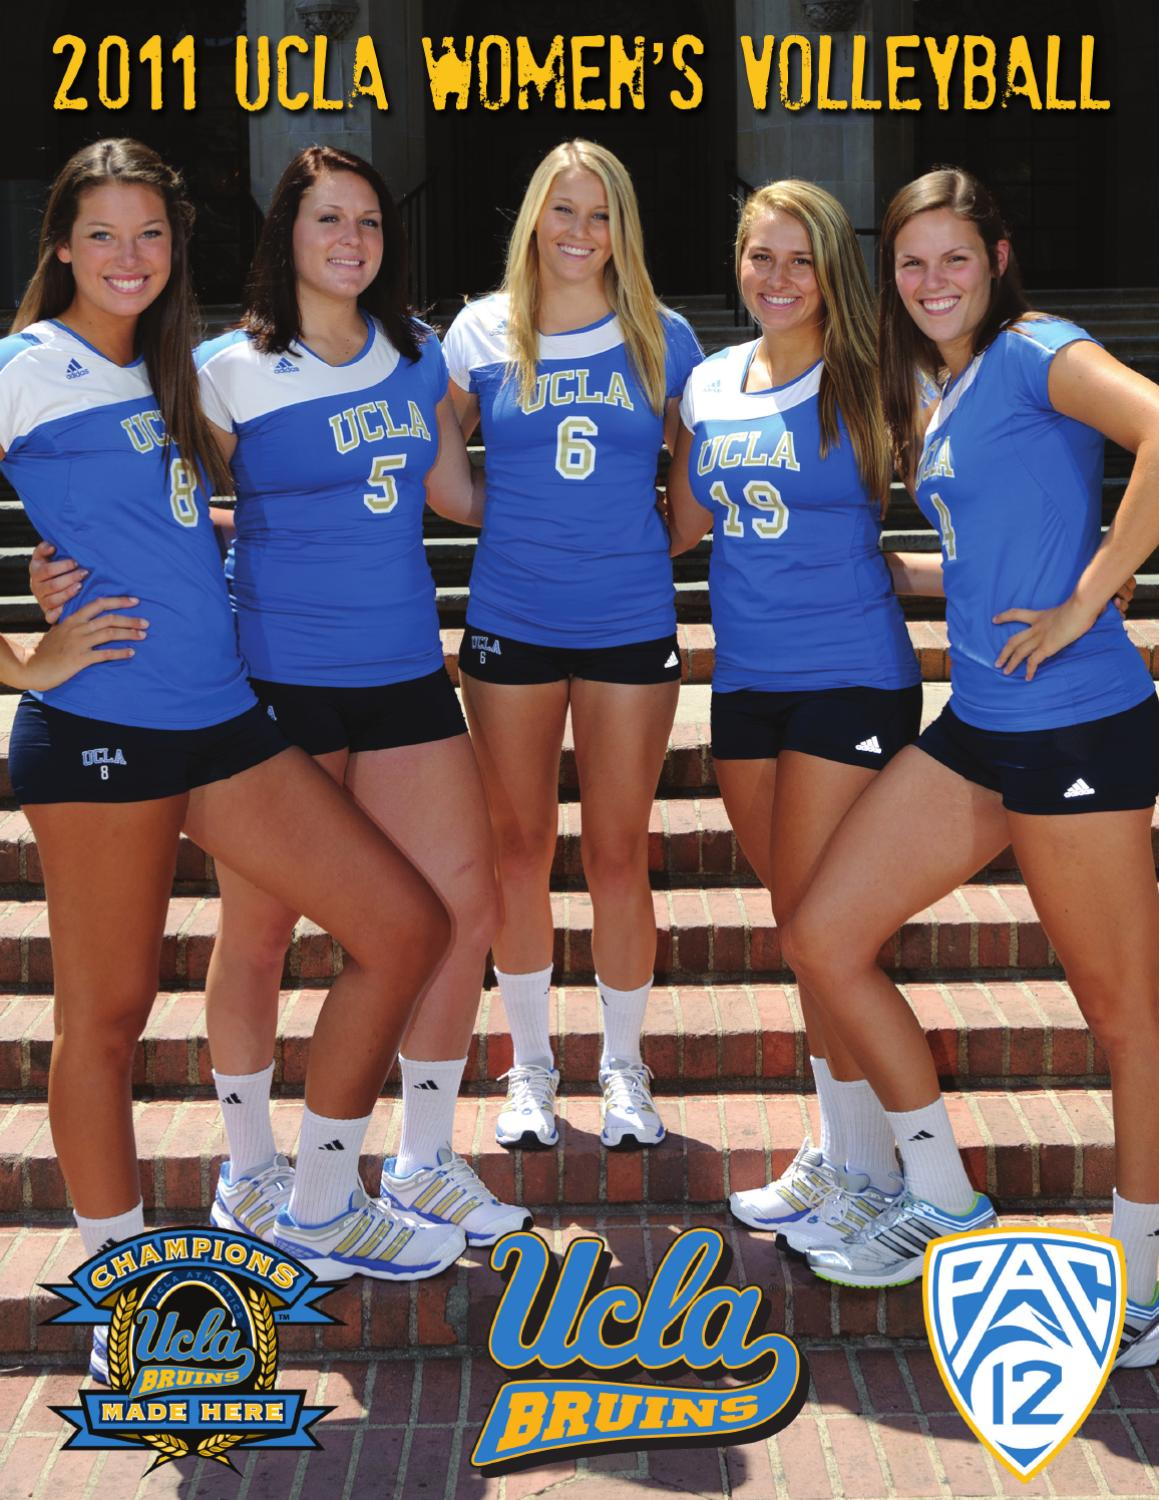 2011 UCLA Women s Volleyball Media Guide by UCLA Athletics - issuu 2f6f3a00d1d